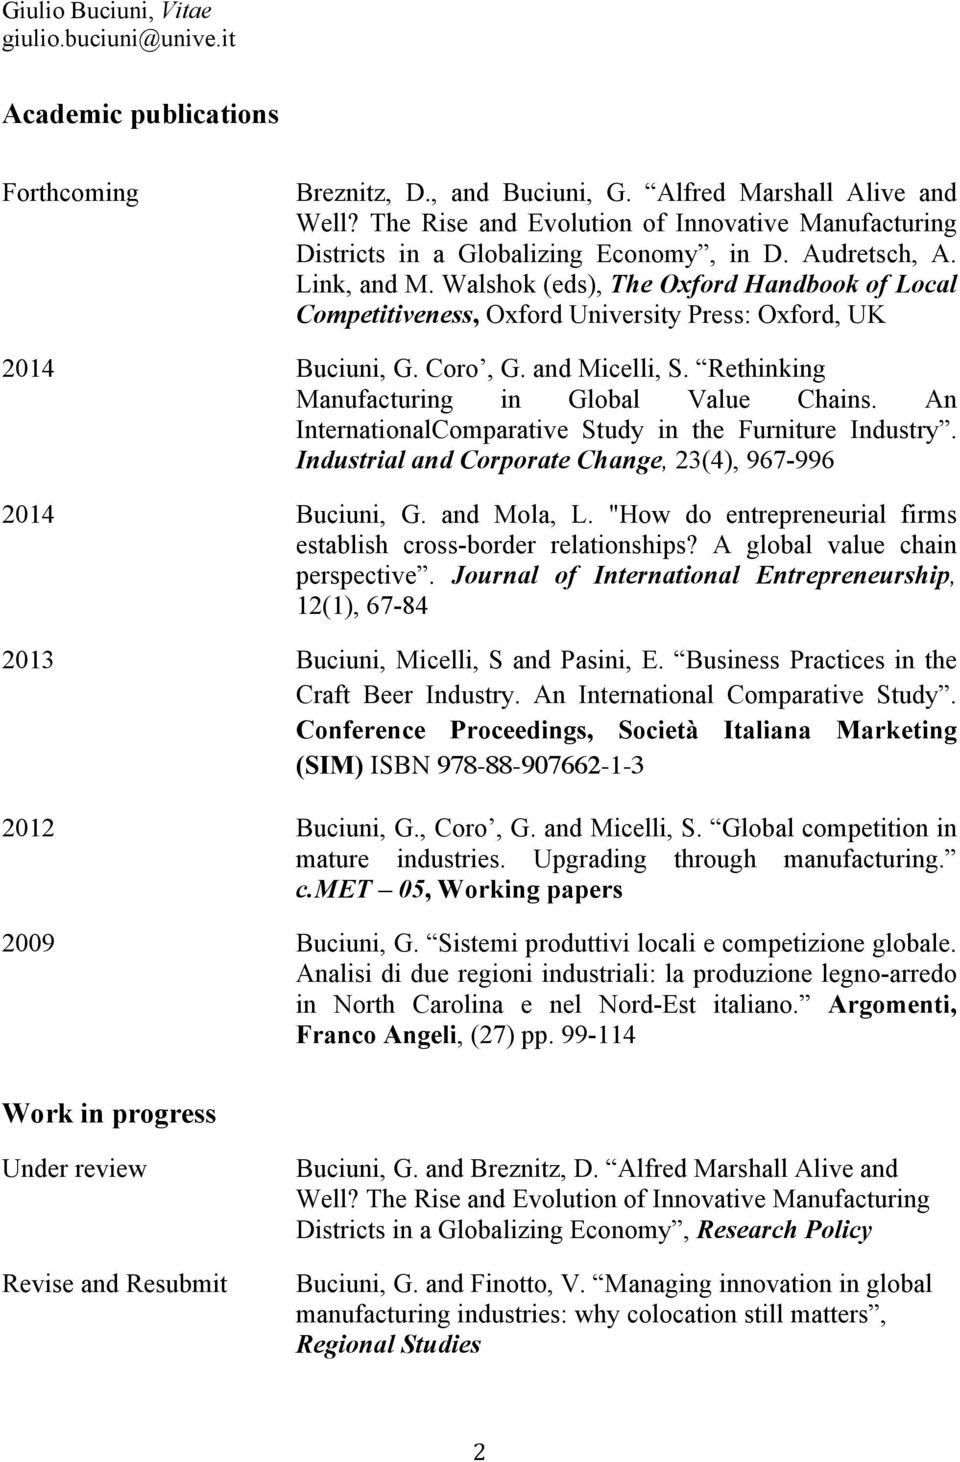 An InternationalComparative Study in the Furniture Industry. Industrial and Corporate Change, 23(4), 967-996 2014 Buciuni, G. and Mola, L.